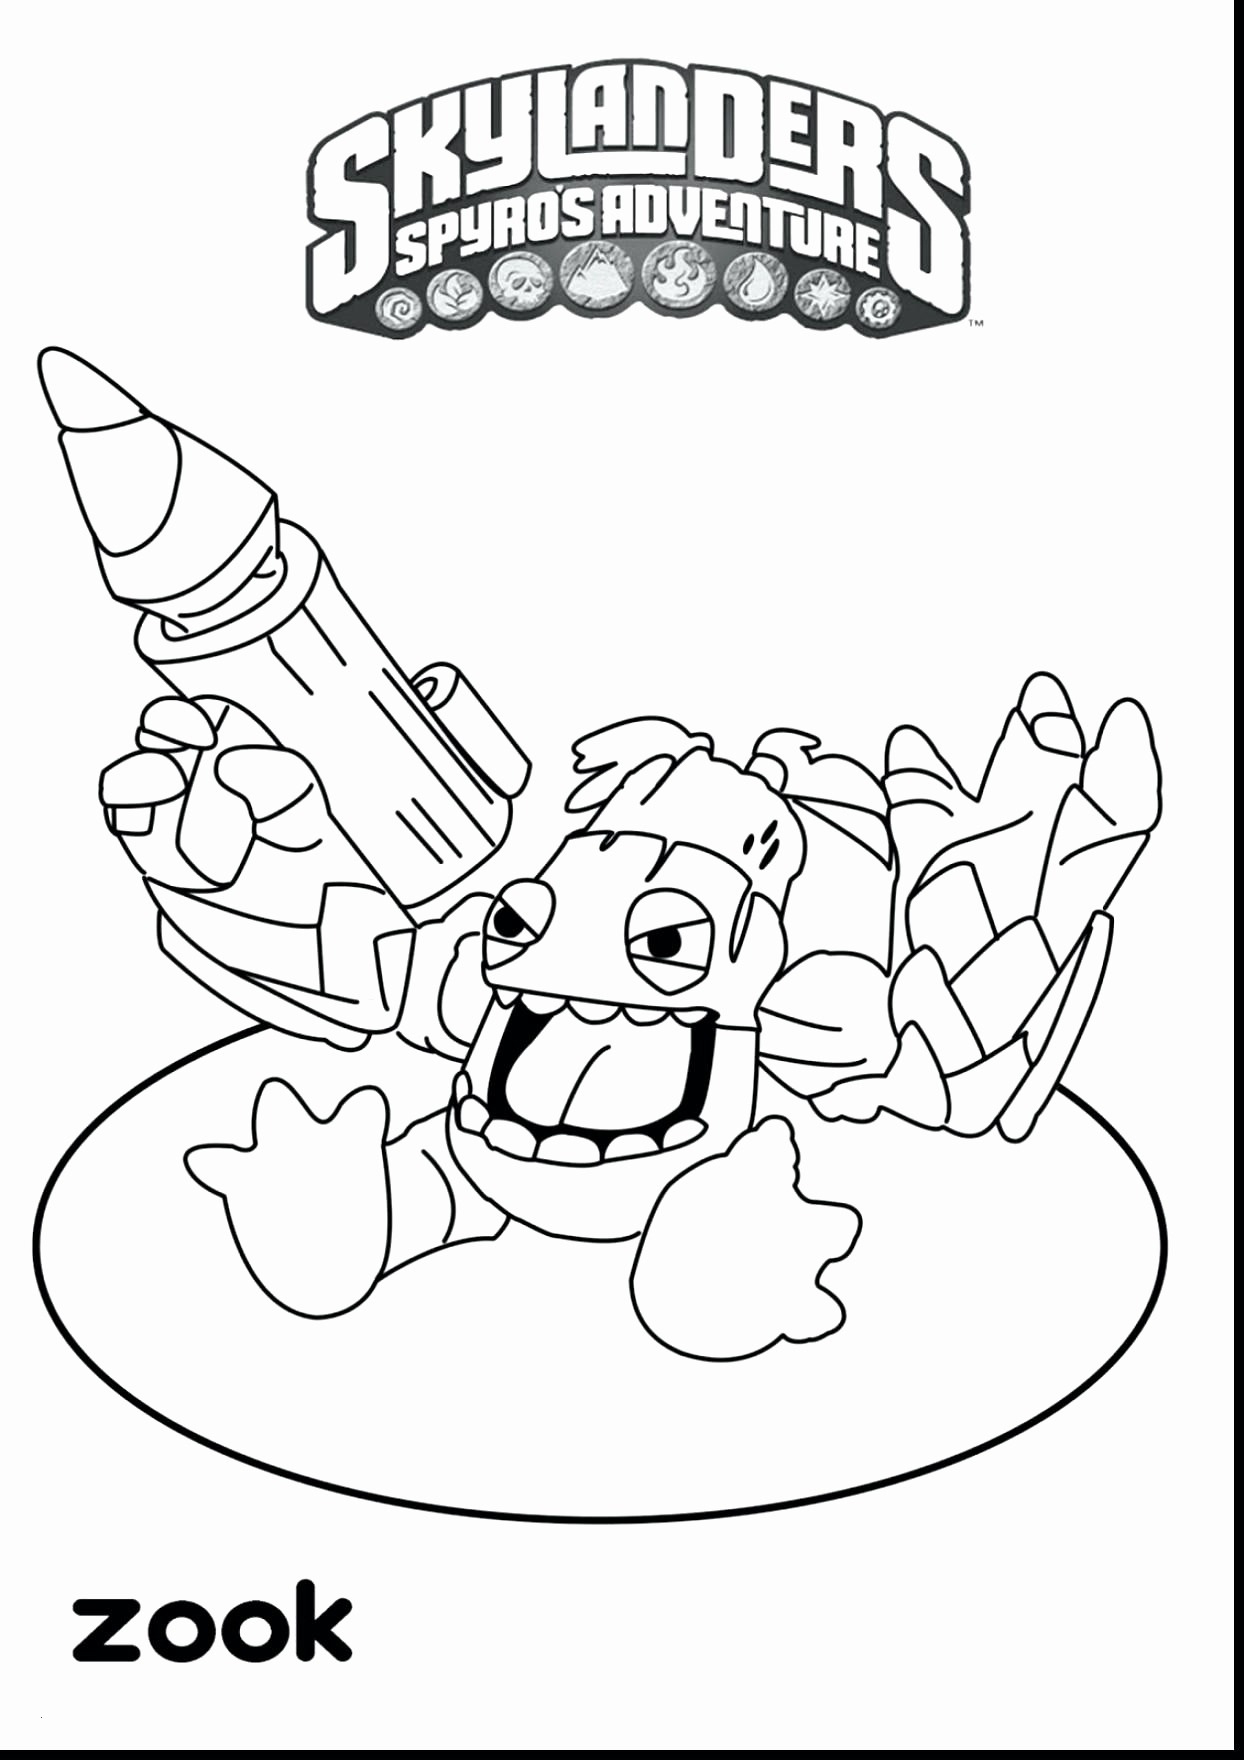 29 Dental Coloring Pages for Kids Gallery - Coloring Sheets